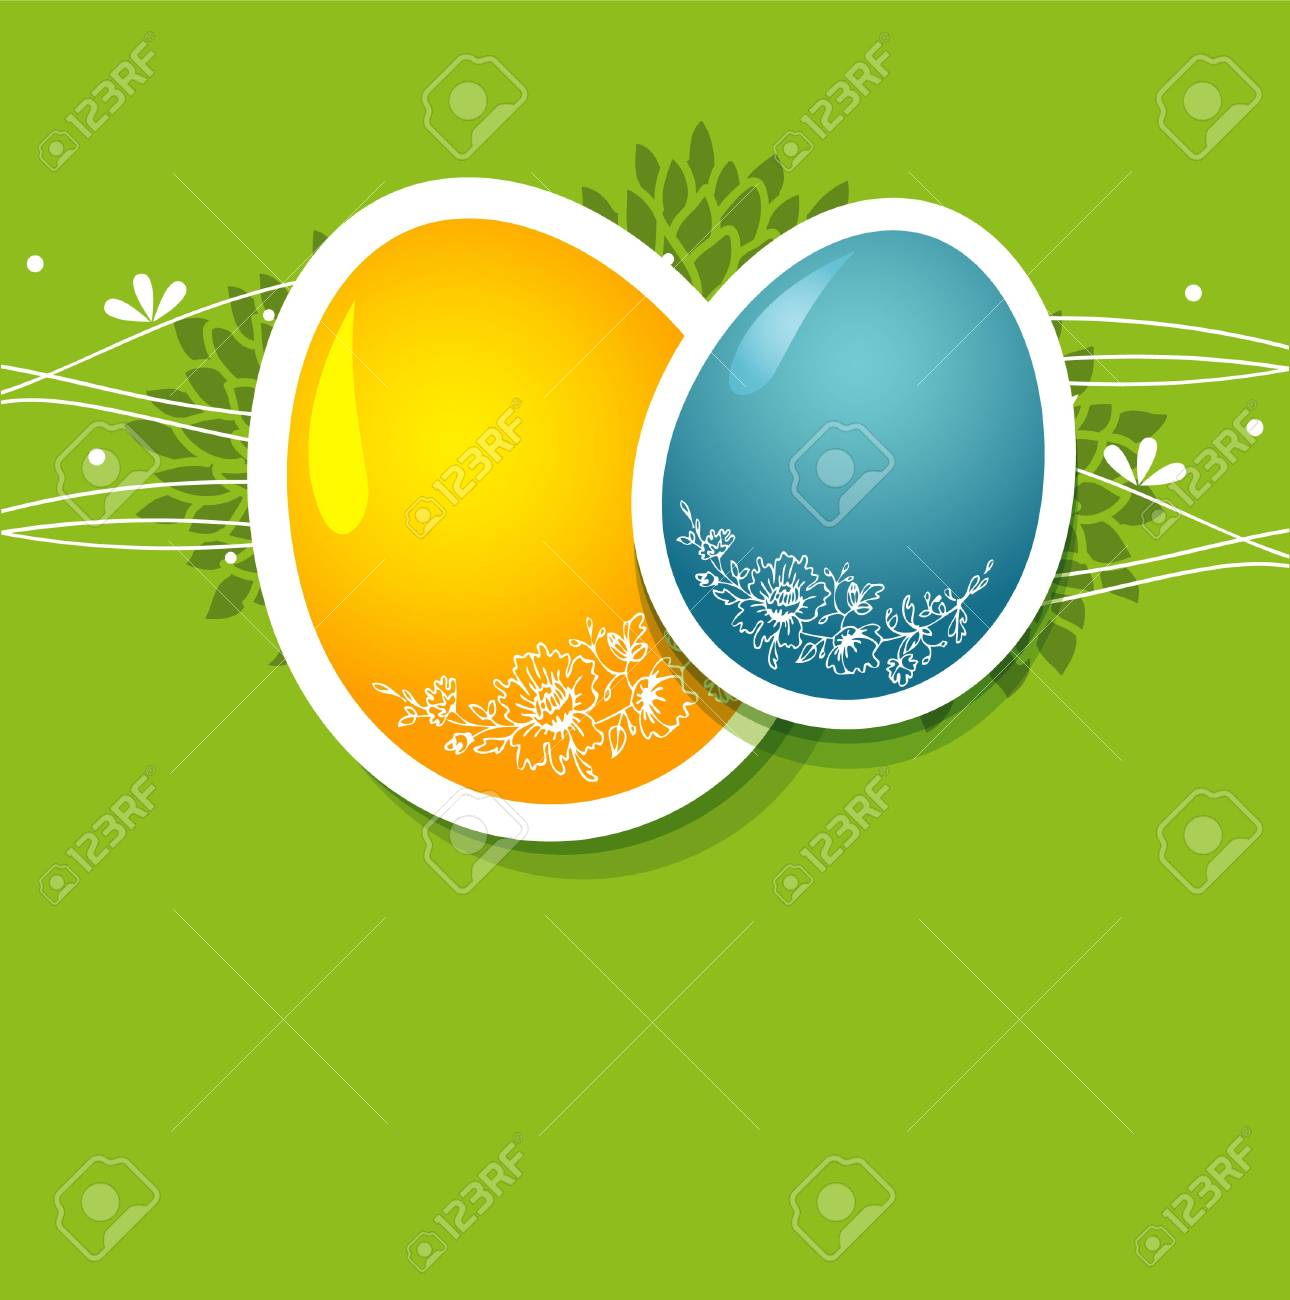 Vector illustration of Pic with eggs Stock Vector - 14863980